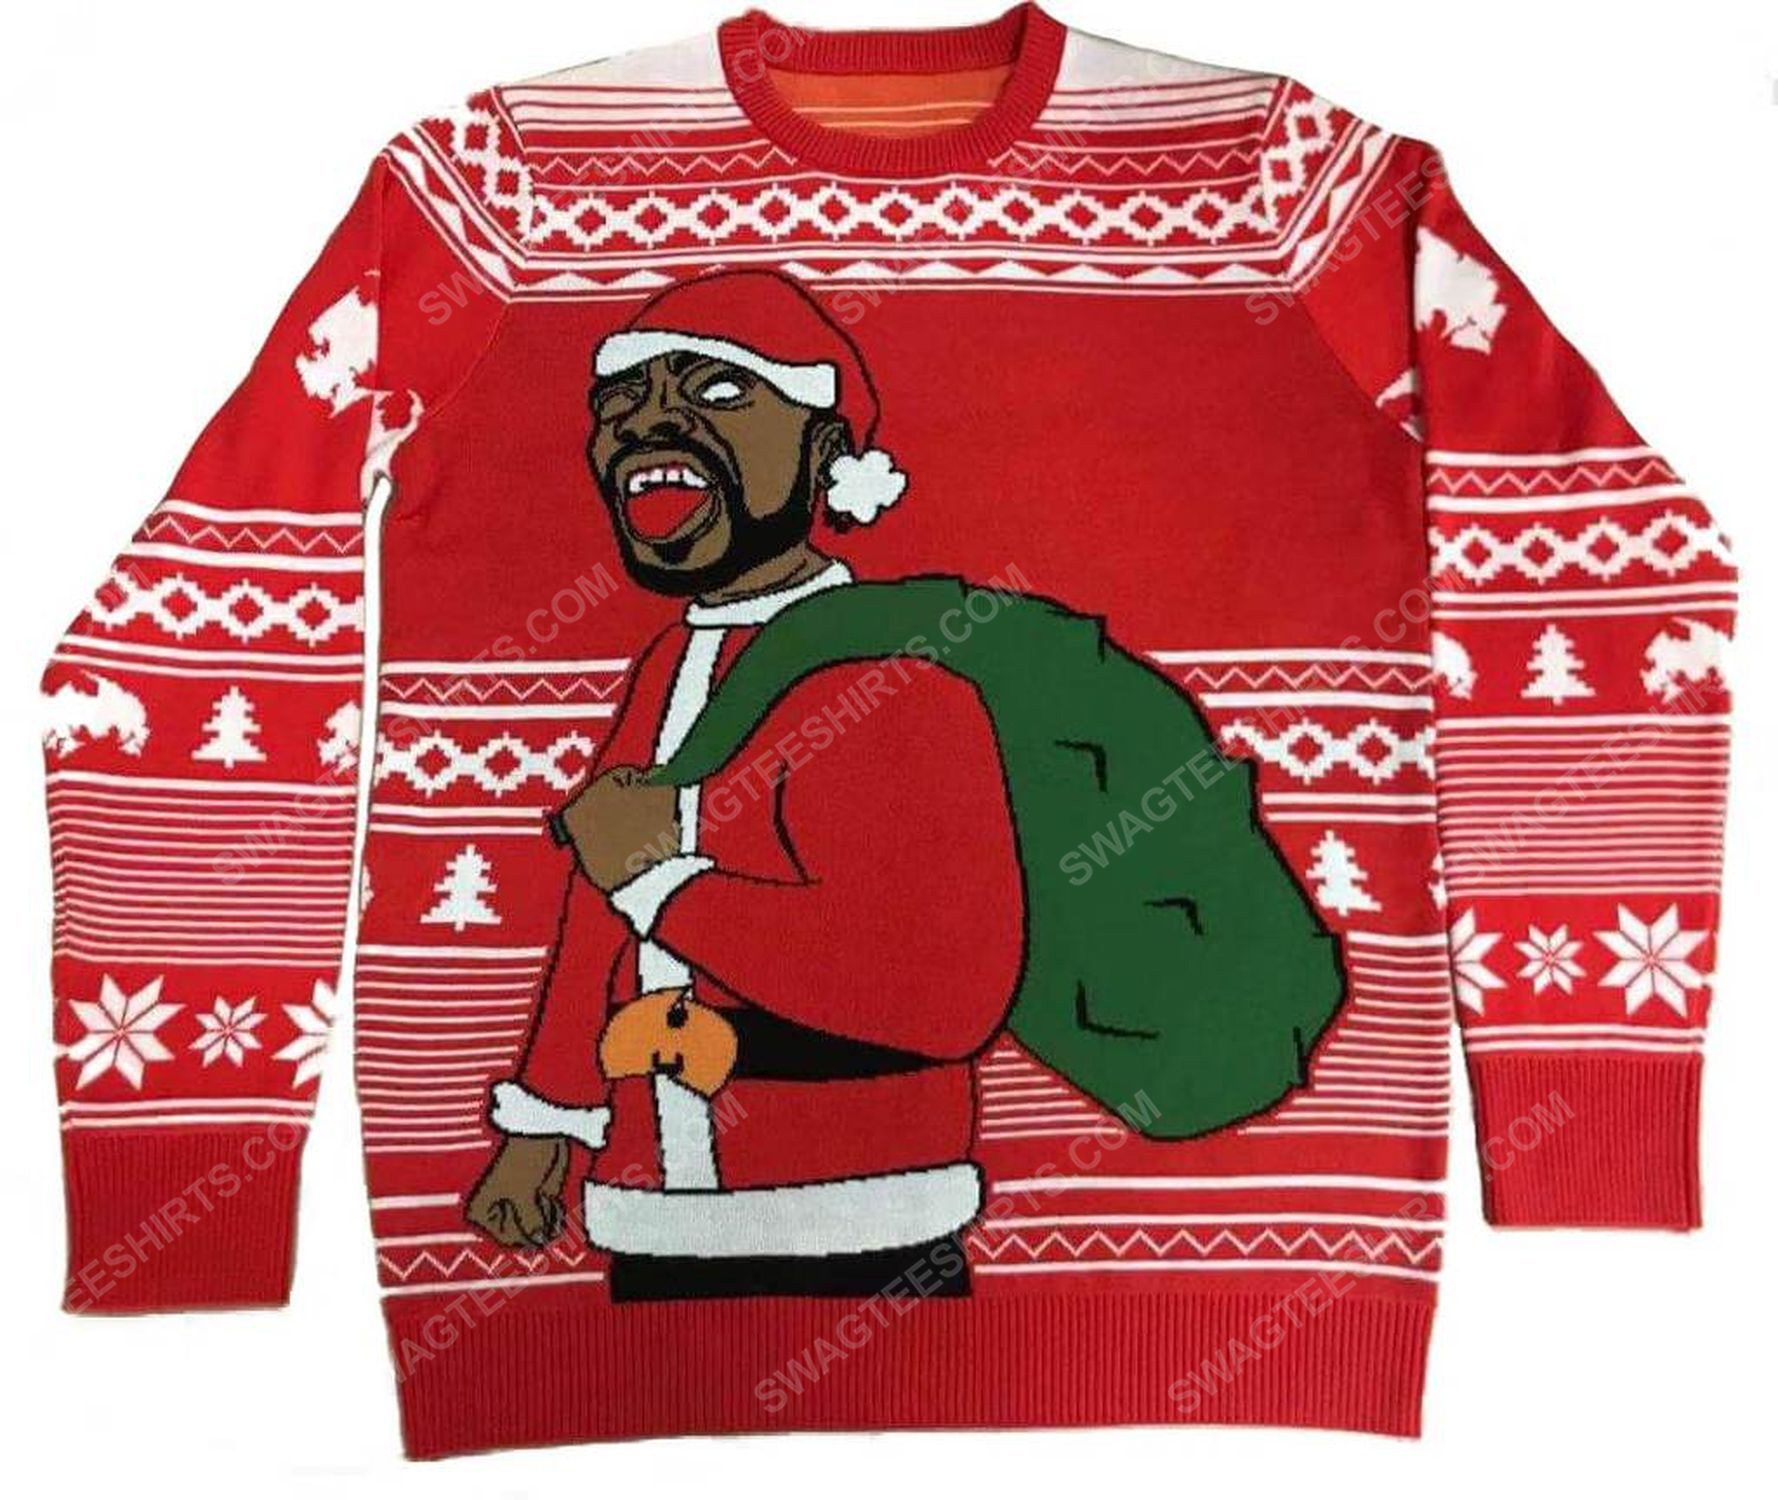 Method man and redman full print ugly christmas sweater 3 - Copy